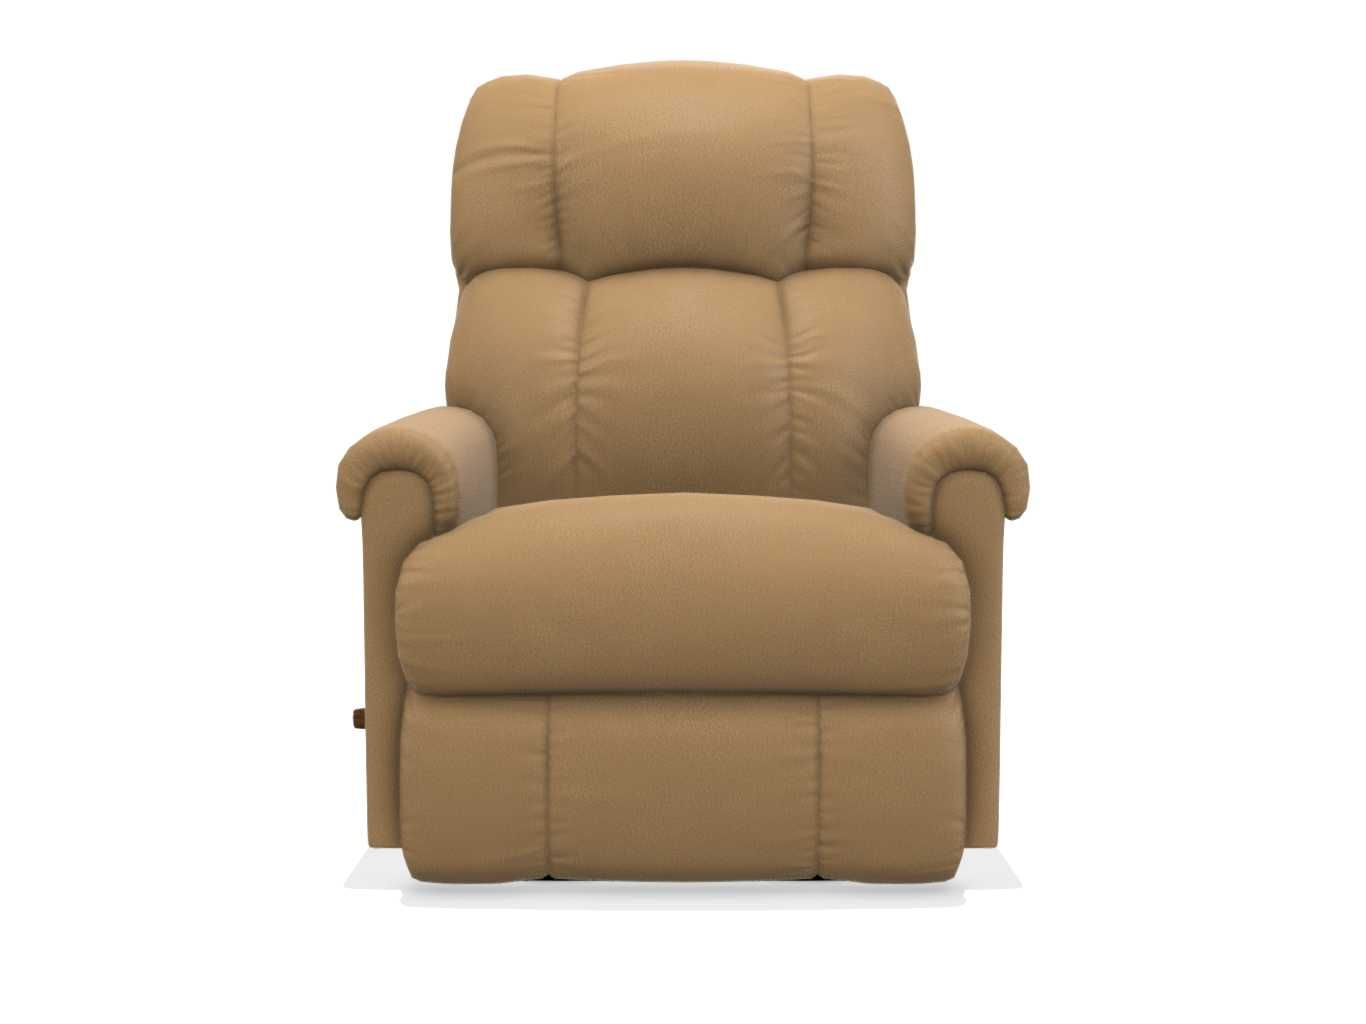 Pinnacle Wall Recliner Recliner Quality Bedroom Furniture Primative Decor